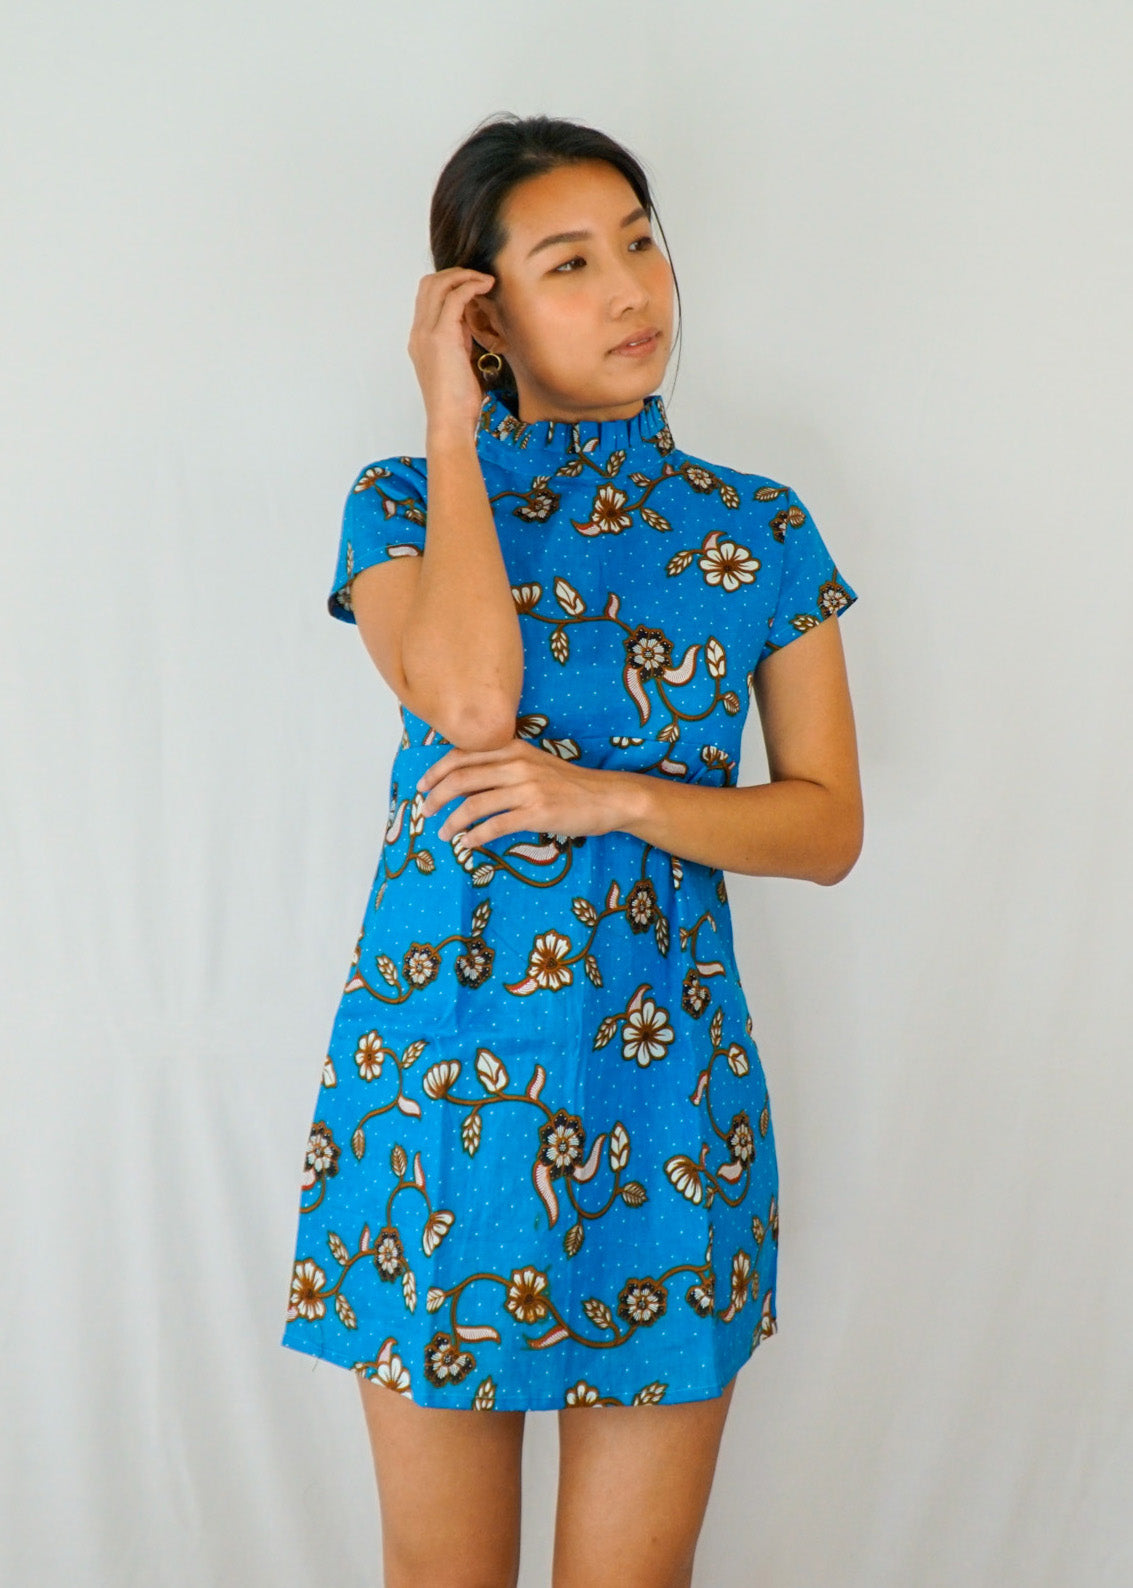 Lily Pleated Collar Mini Dress in Blue Floral